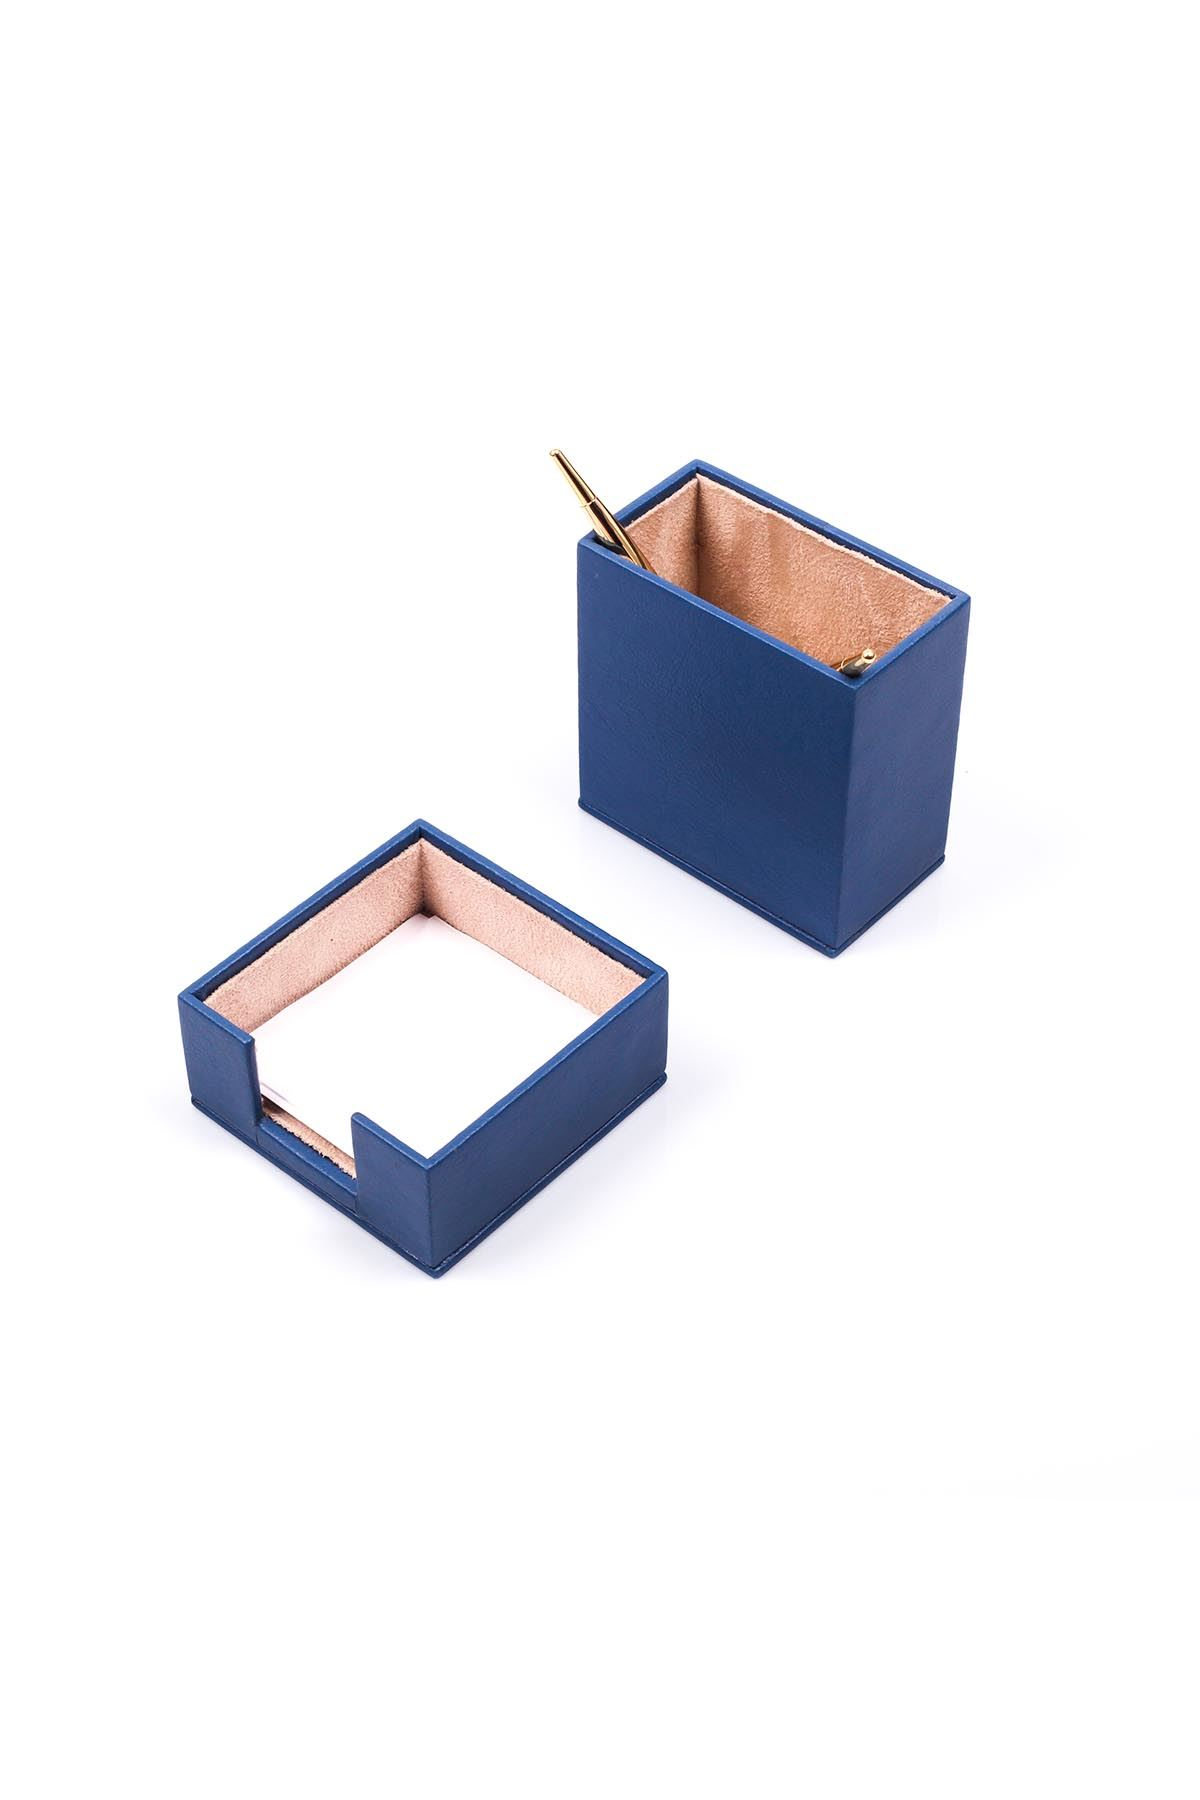 Leather Desk Accessories set of 2 Blue| Desk Set Accessories | Desktop Accessories | Desk Accessories | Desk Organizers | Pencil Holder | Note Paper Holder